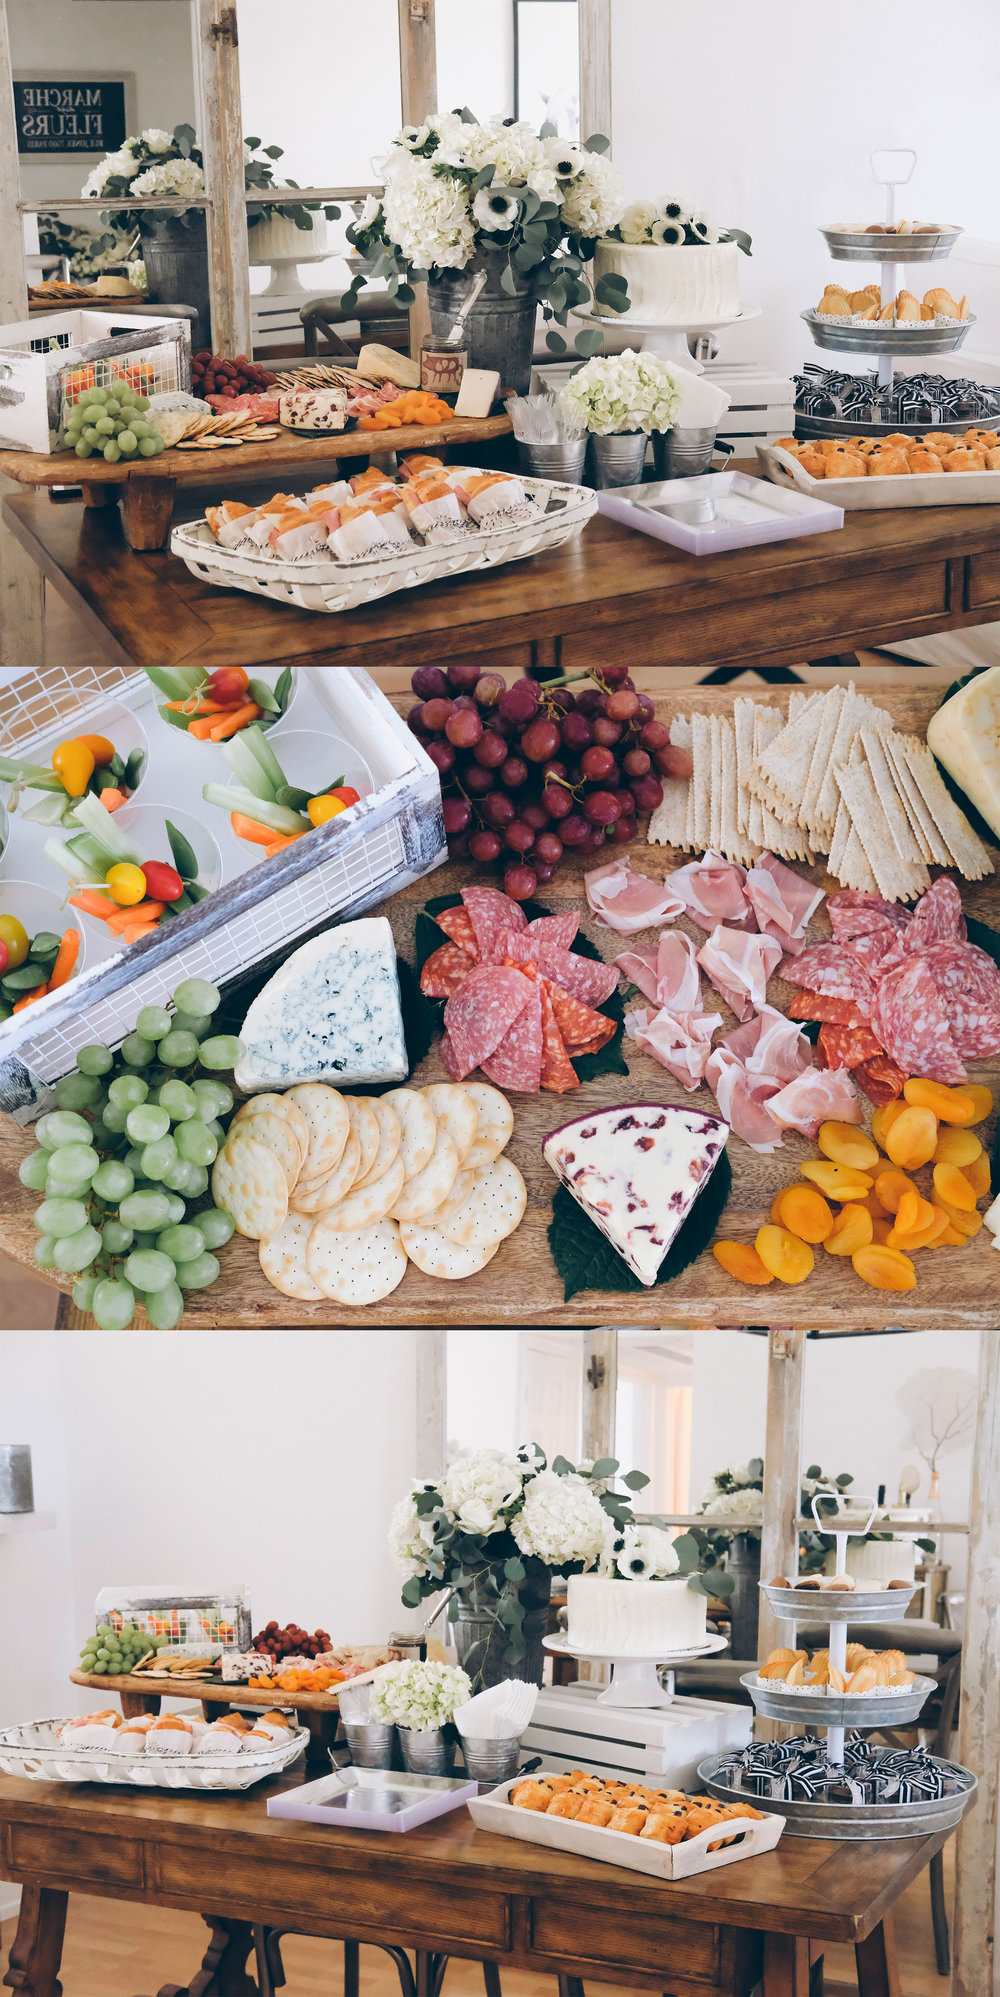 French Market Baby Shower.  Black and white boy baby shower.  French themed baby shower.  Neutral baby shower.   Cheese board inspiration.